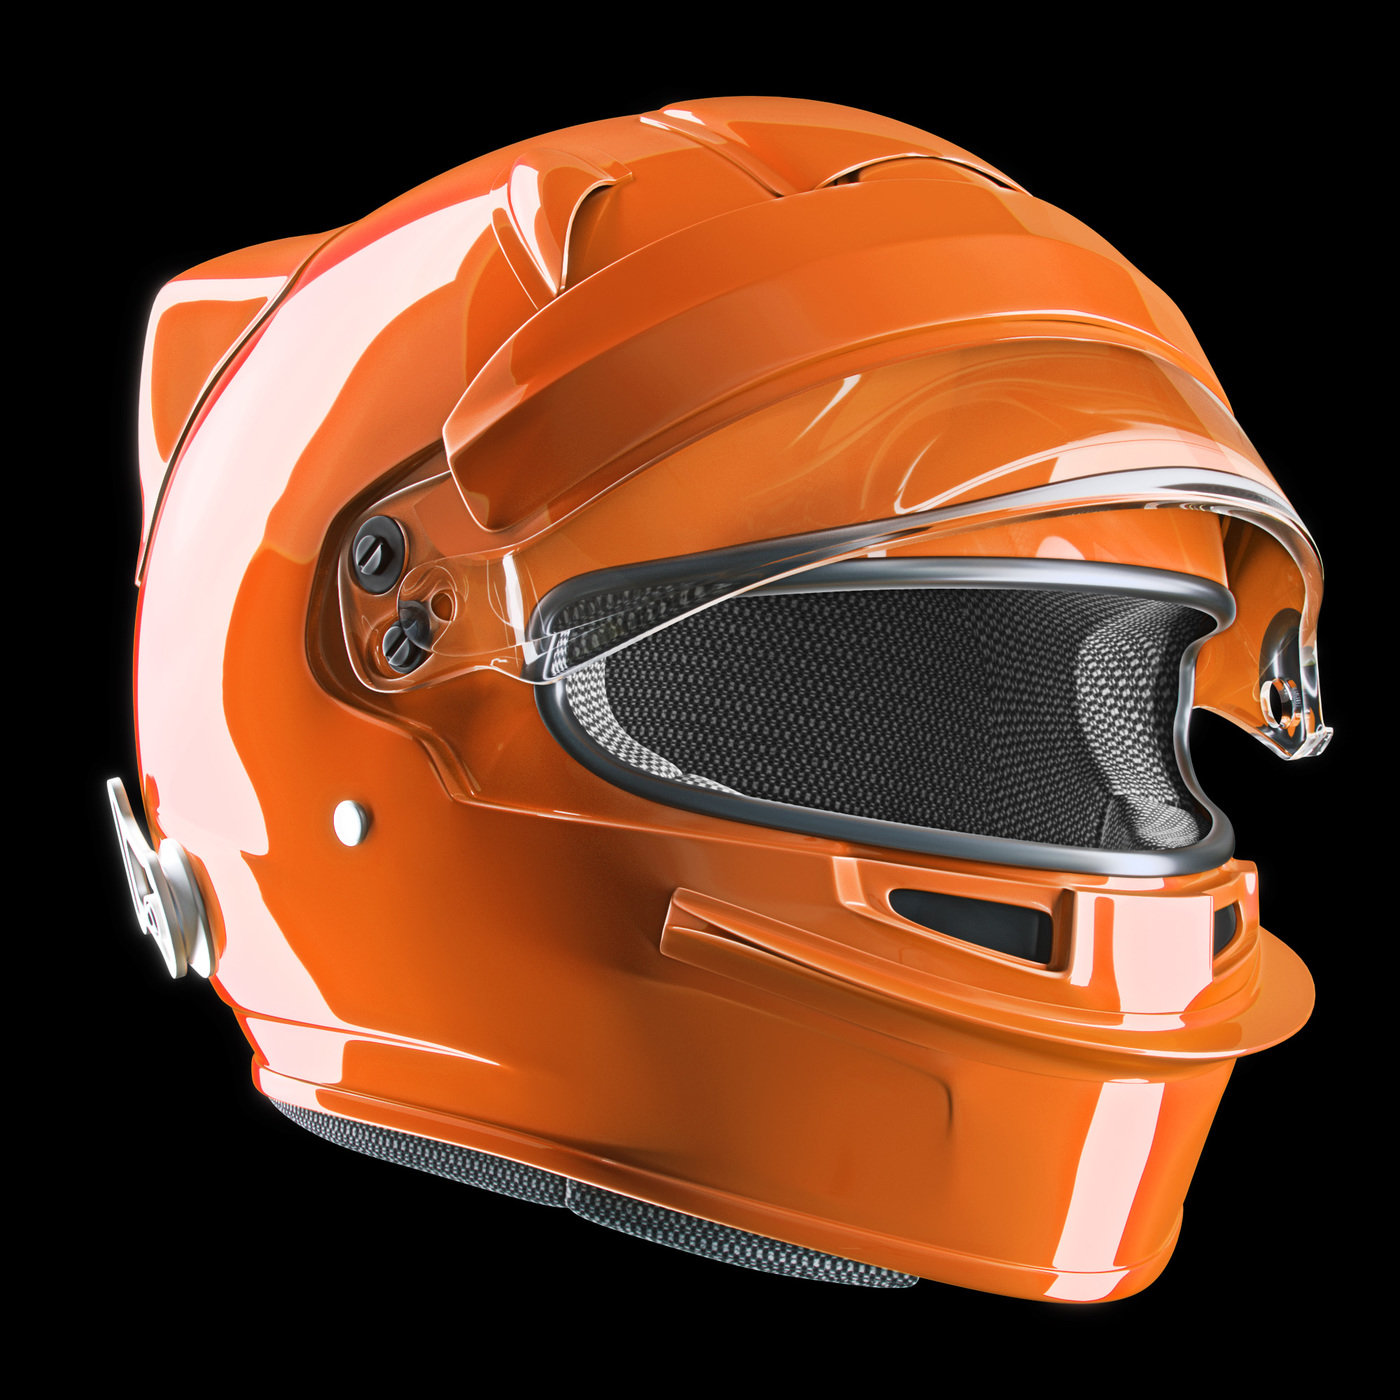 bell hp7 racing helmet by brian haeger at coroflotcom